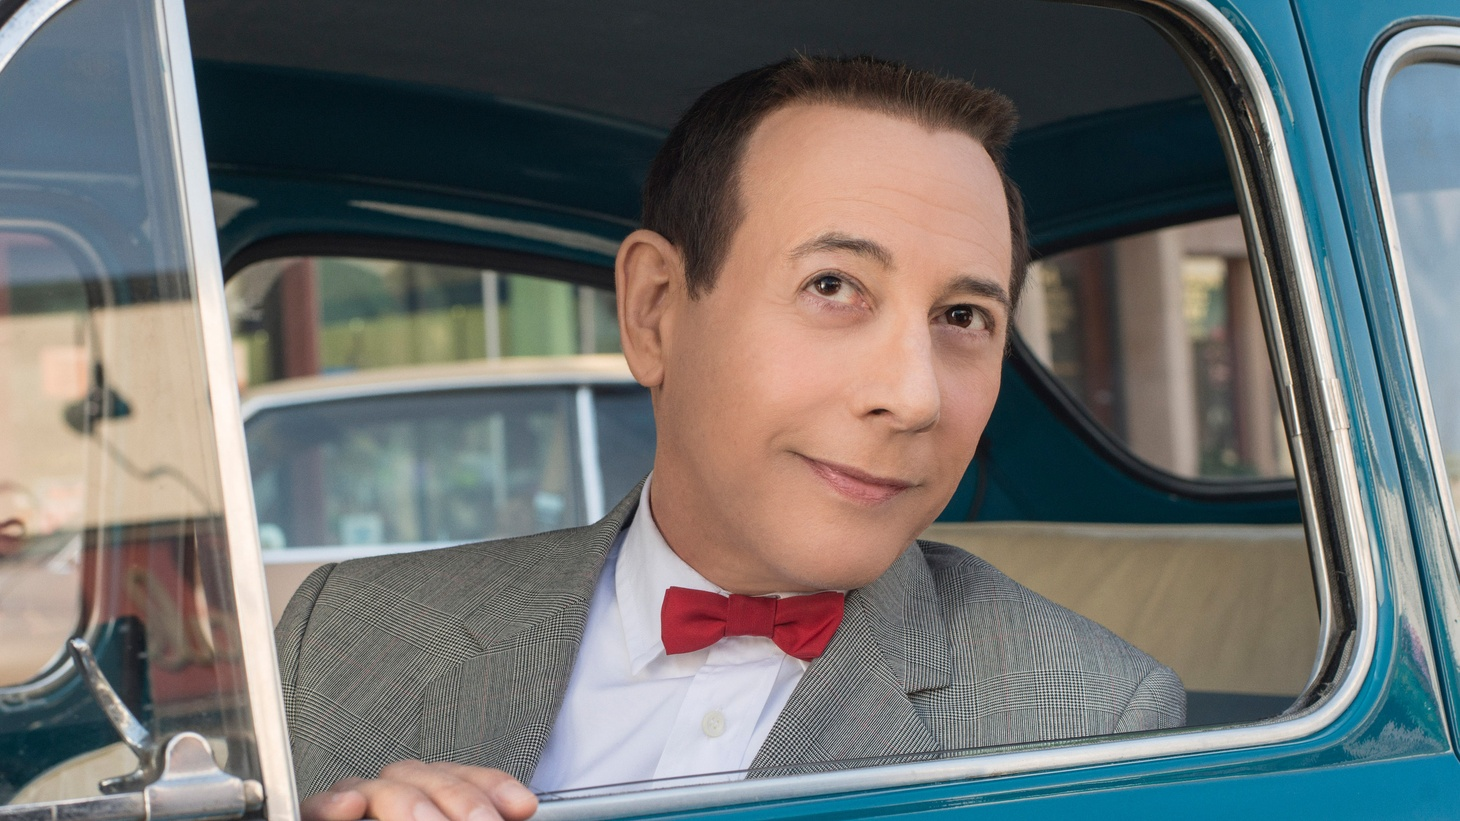 Pee-wee Herman returns to our TV screens with his first movie in 28 years. What songs inspire the iconic character? He gives us the scoop, with a playlist heavy on funk and soul.